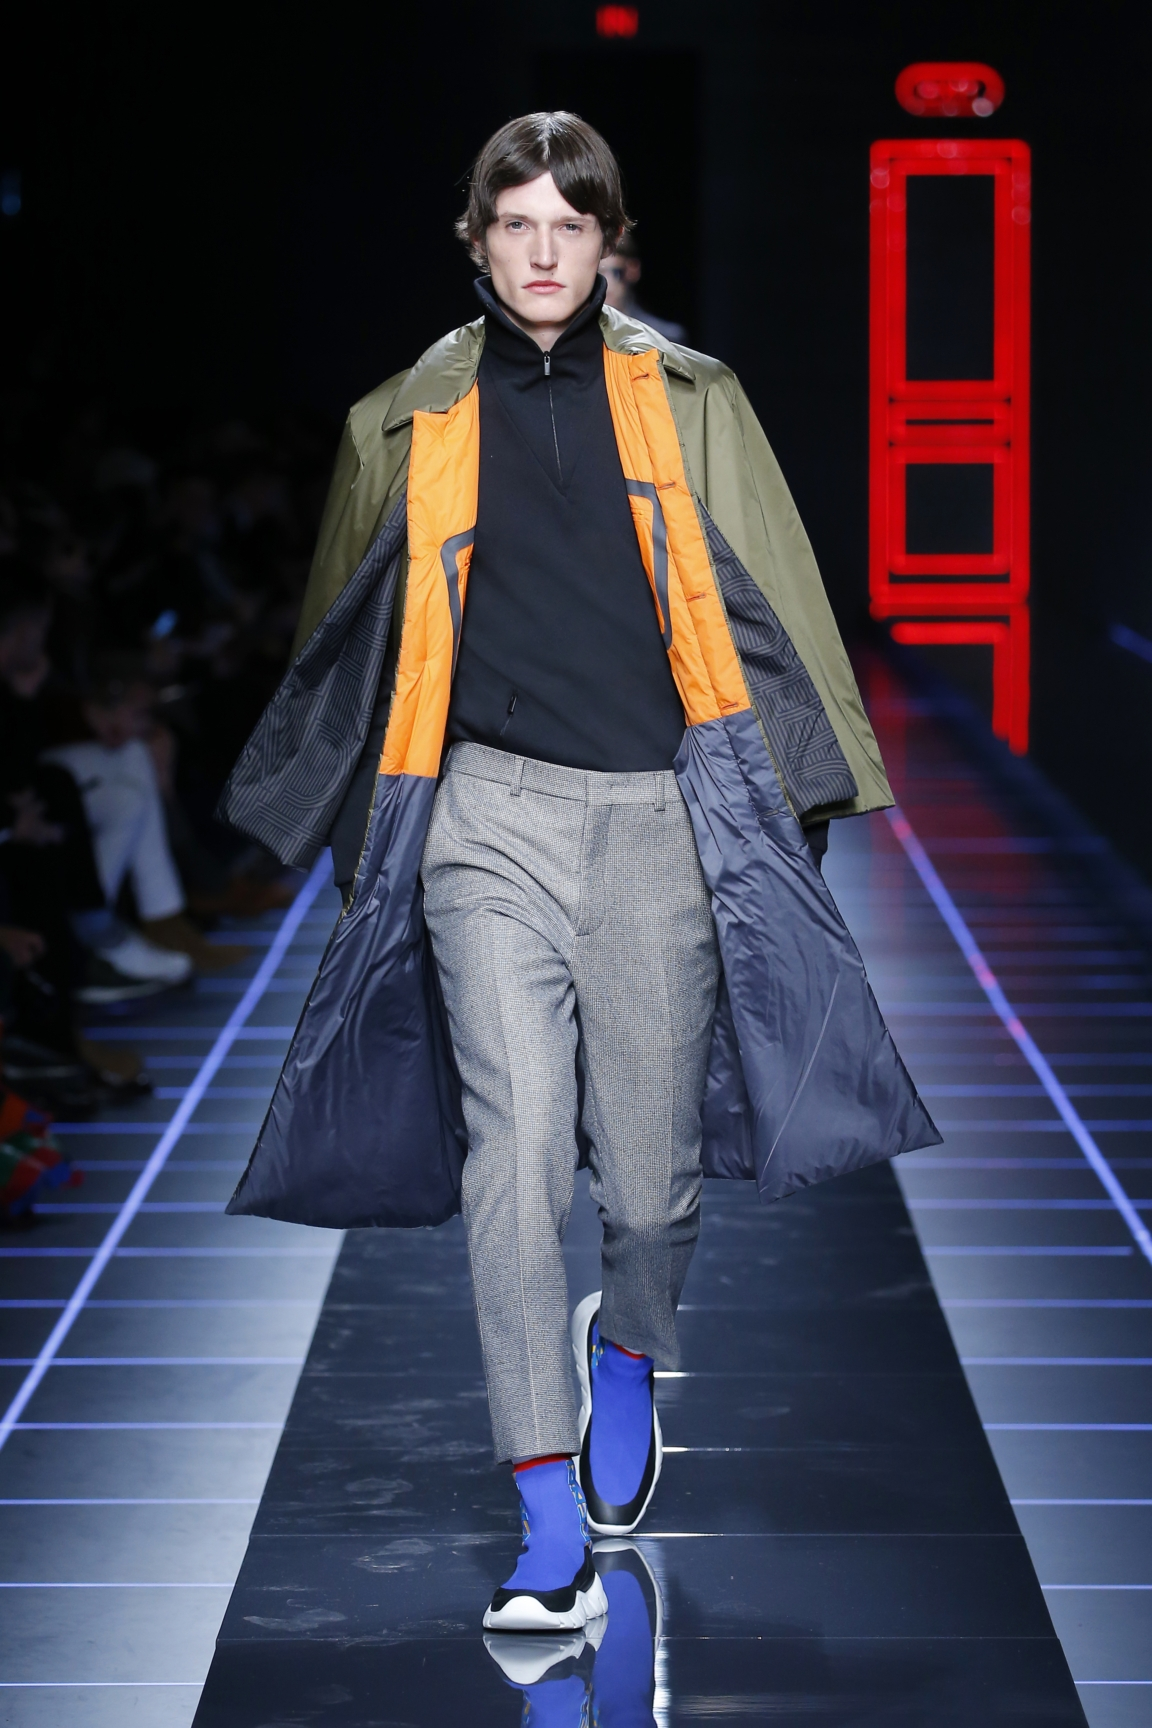 fendi-men-fw16-17-look-13